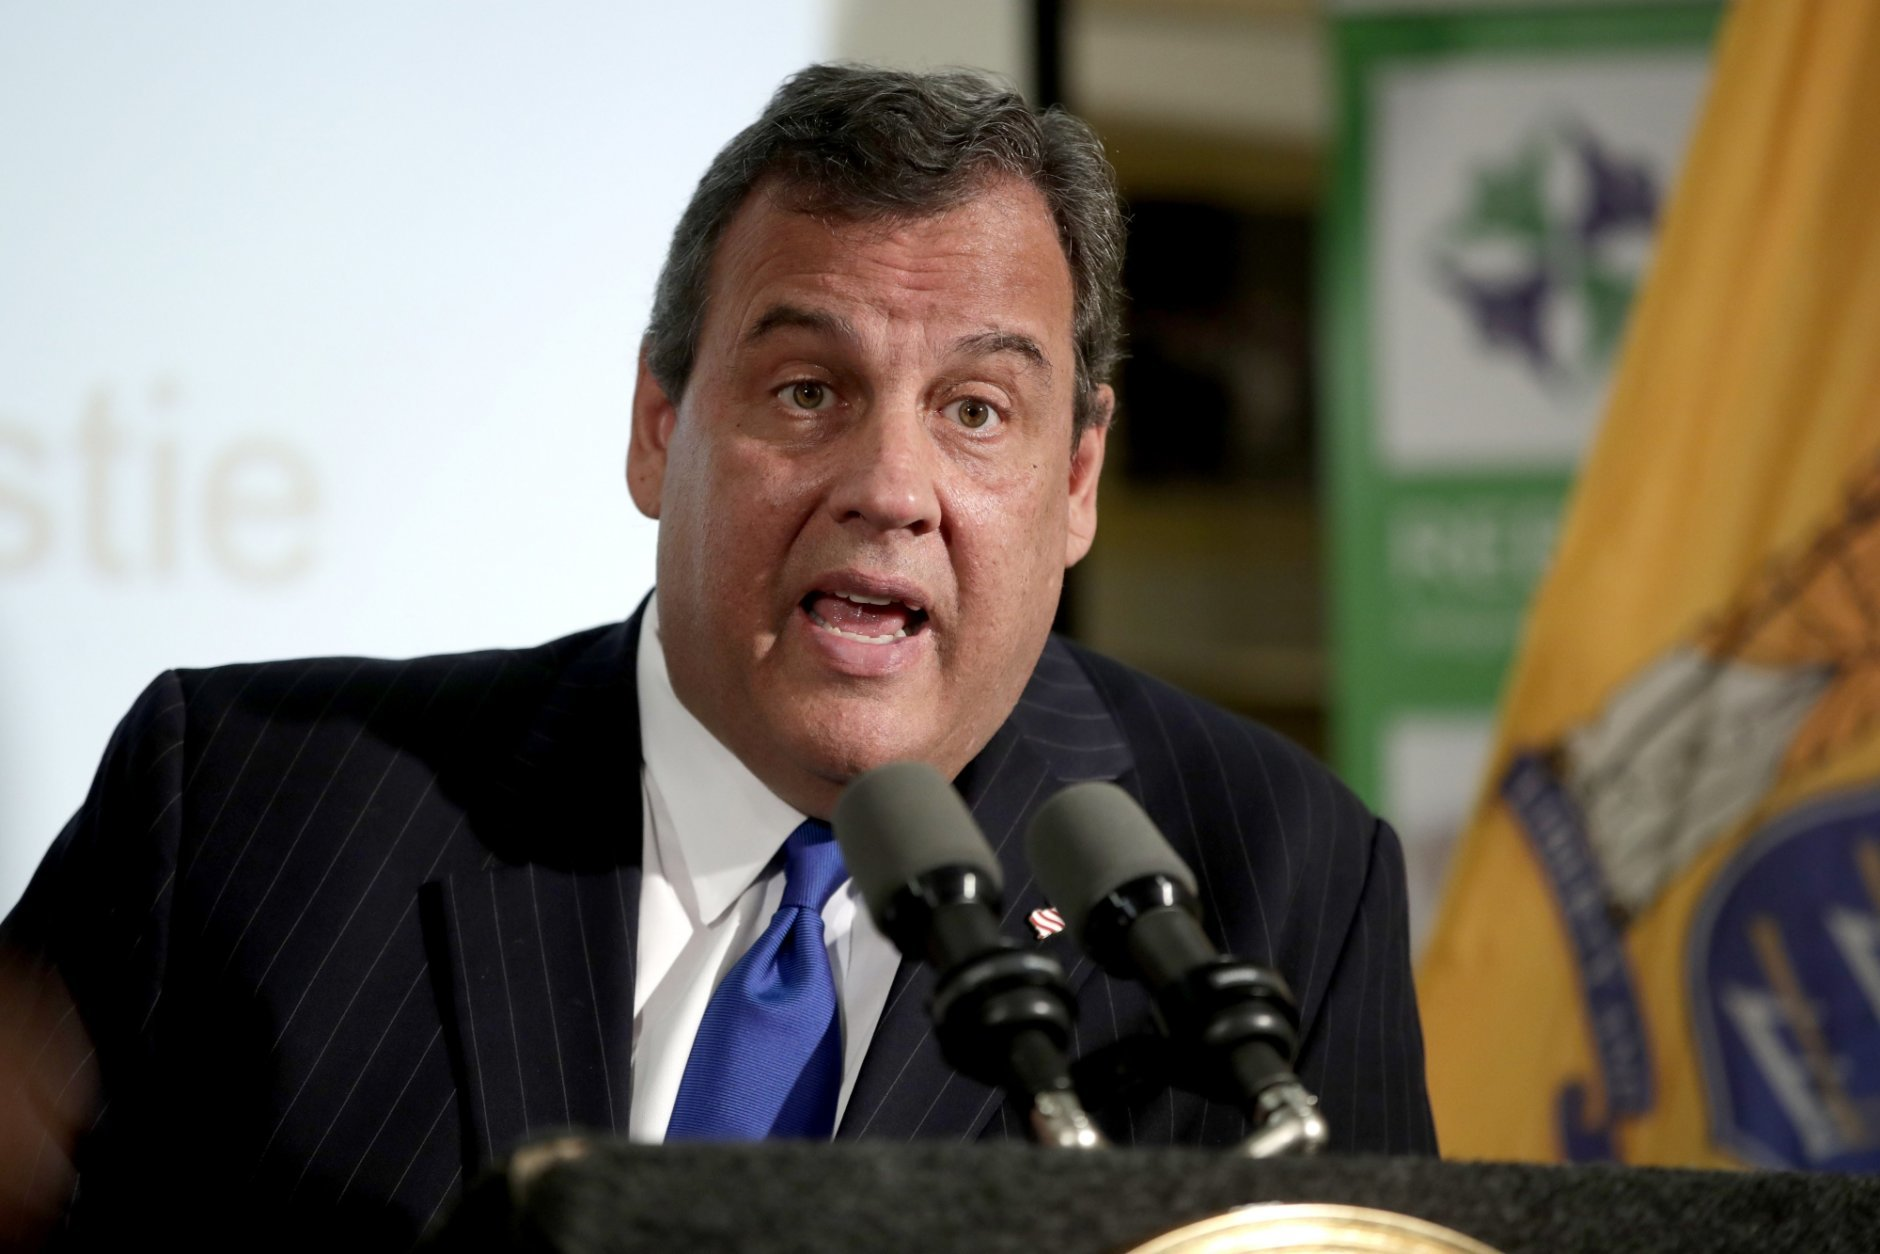 """FILE - In this Nov. 29, 2017, file photo, New Jersey Gov. Chris Christie speaks during a news conference in Newark, N.J. Former New Jersey Gov. Christie wants lawmakers across the country to resist a bill that would give the federal government control over regulating sports betting. The Republican says states have proven they can handle the job. Speaking Friday, Jan. 4, 2019, in New Orleans, Christie also urged them to resist granting the leagues """"integrity fees,"""" which are essentially a slice of the action on sports bets, and to refuse demands to use official league data in sports betting. (AP Photo/Julio Cortez, File)"""